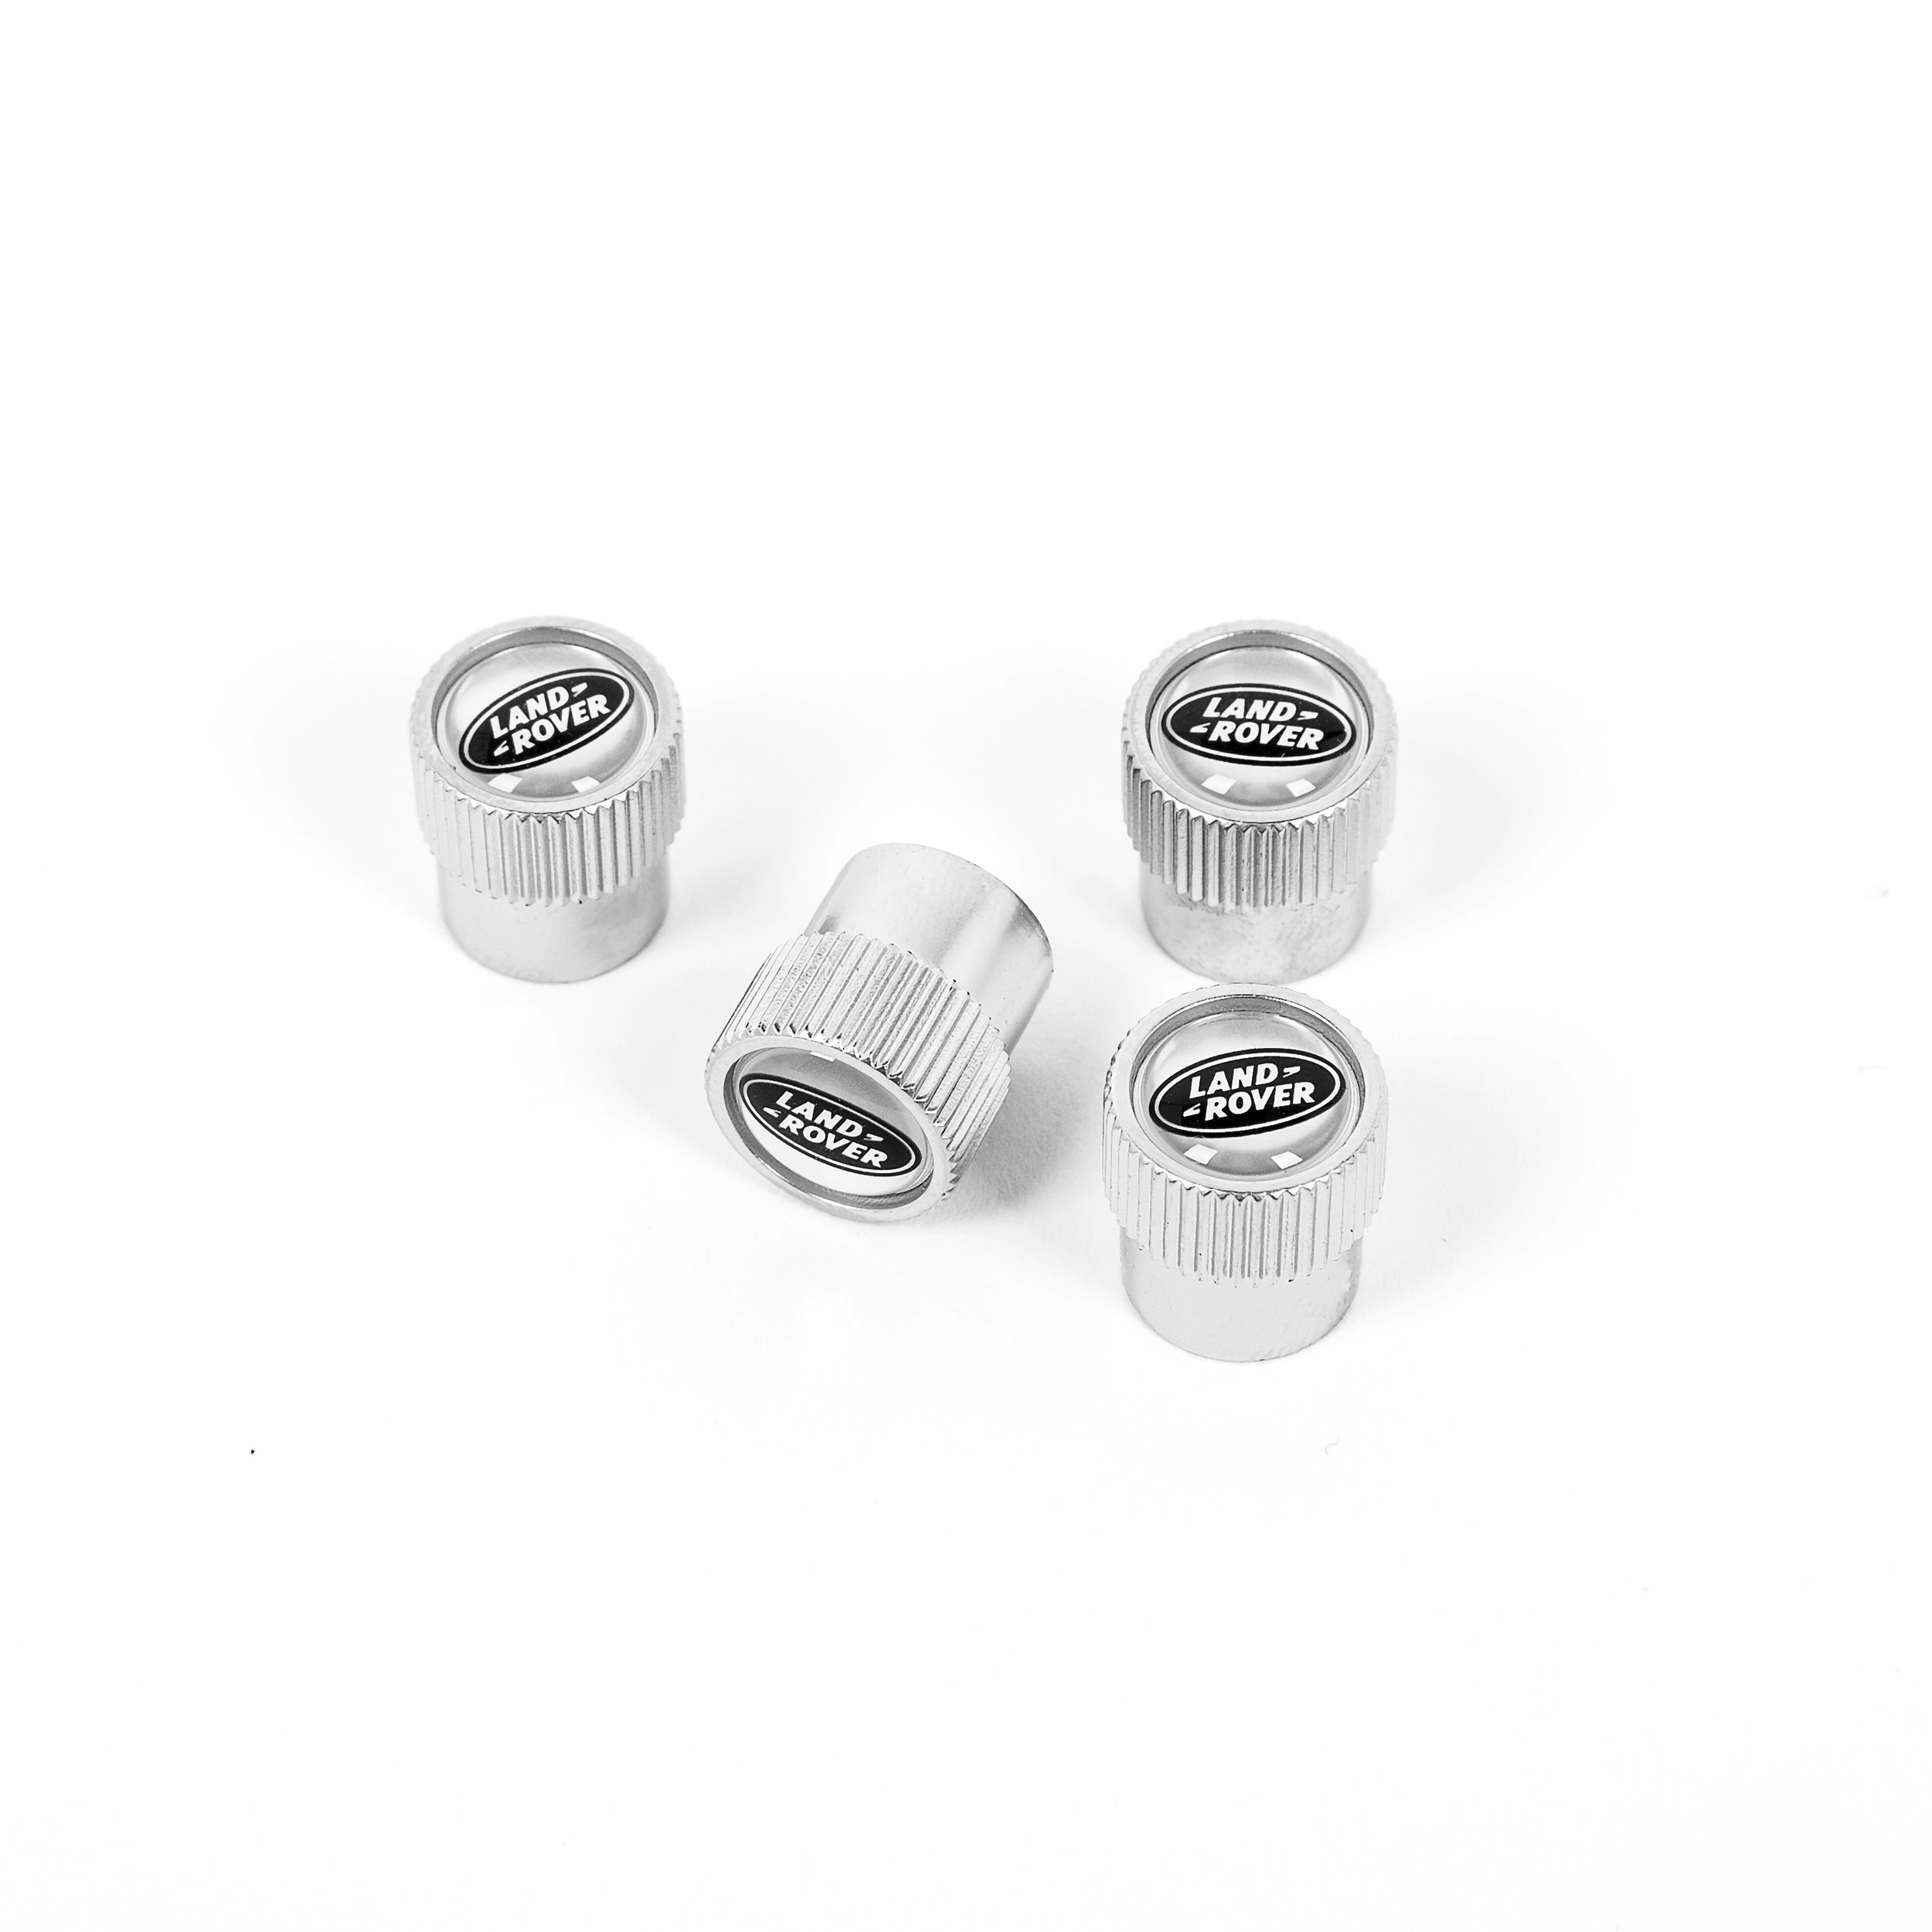 Land Rover Valve Stem Caps